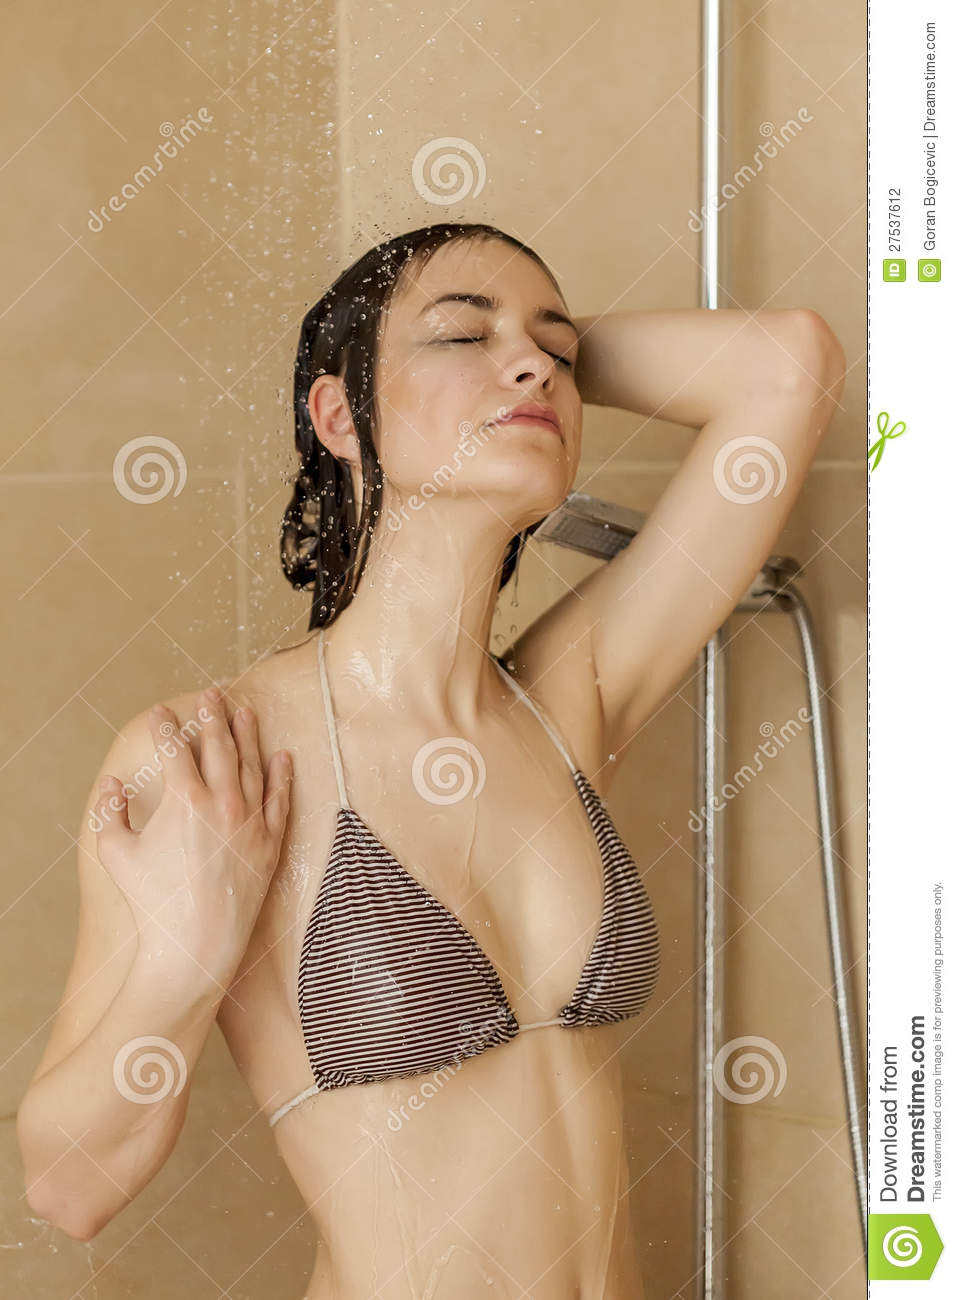 girl in shower porn